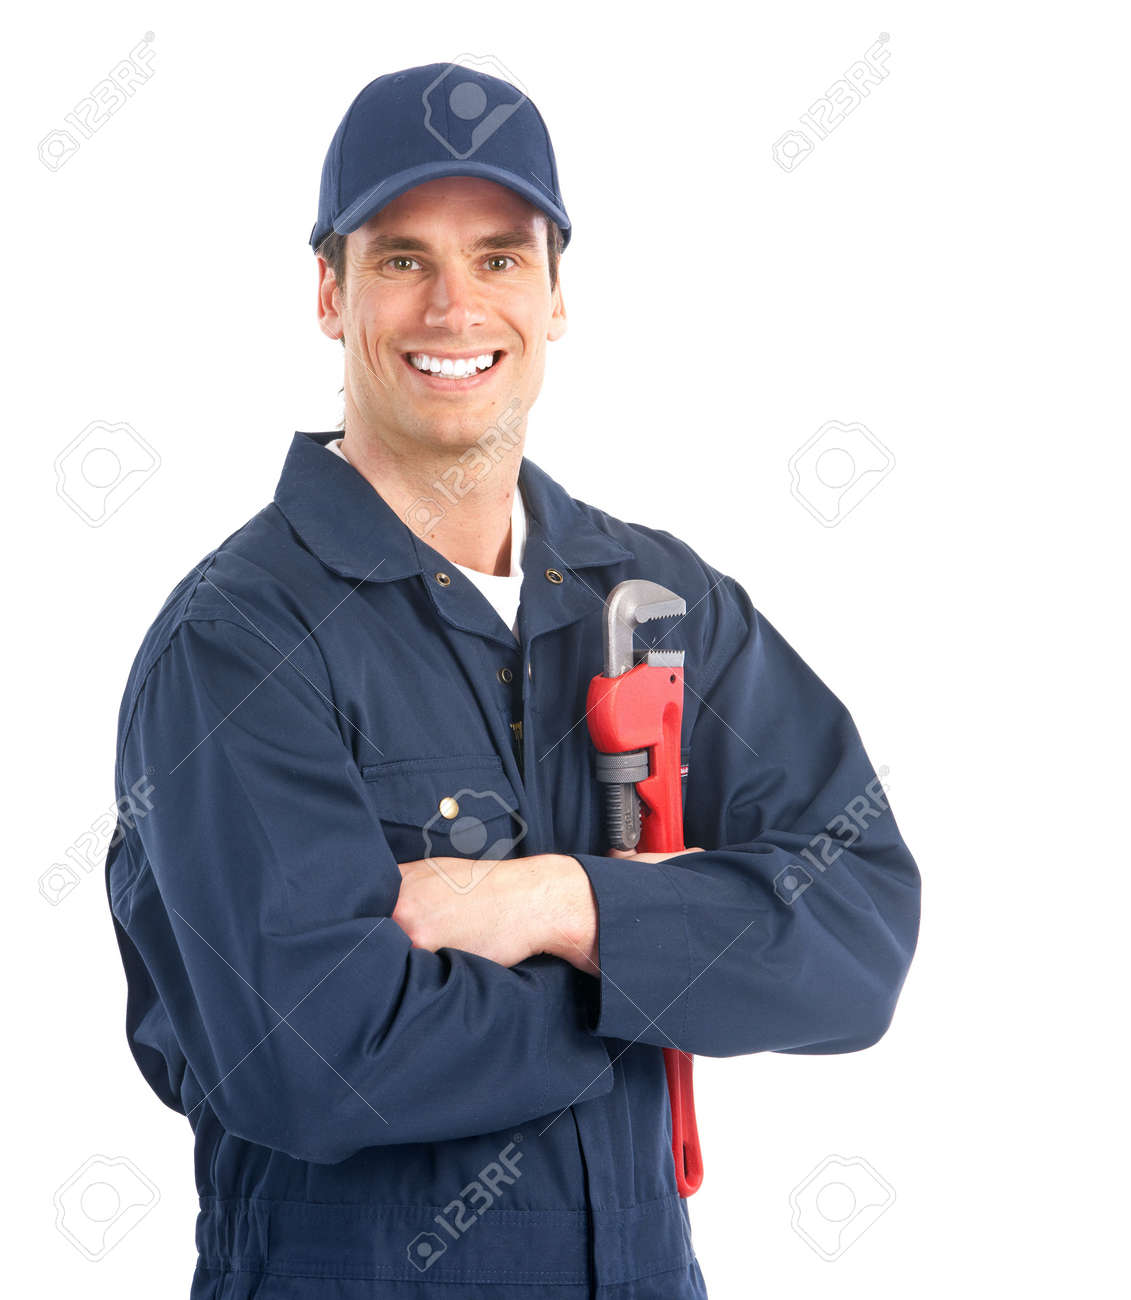 Young handsome plumber worker with adjustable wrench. Isolated over white background Stock Photo - 6607994